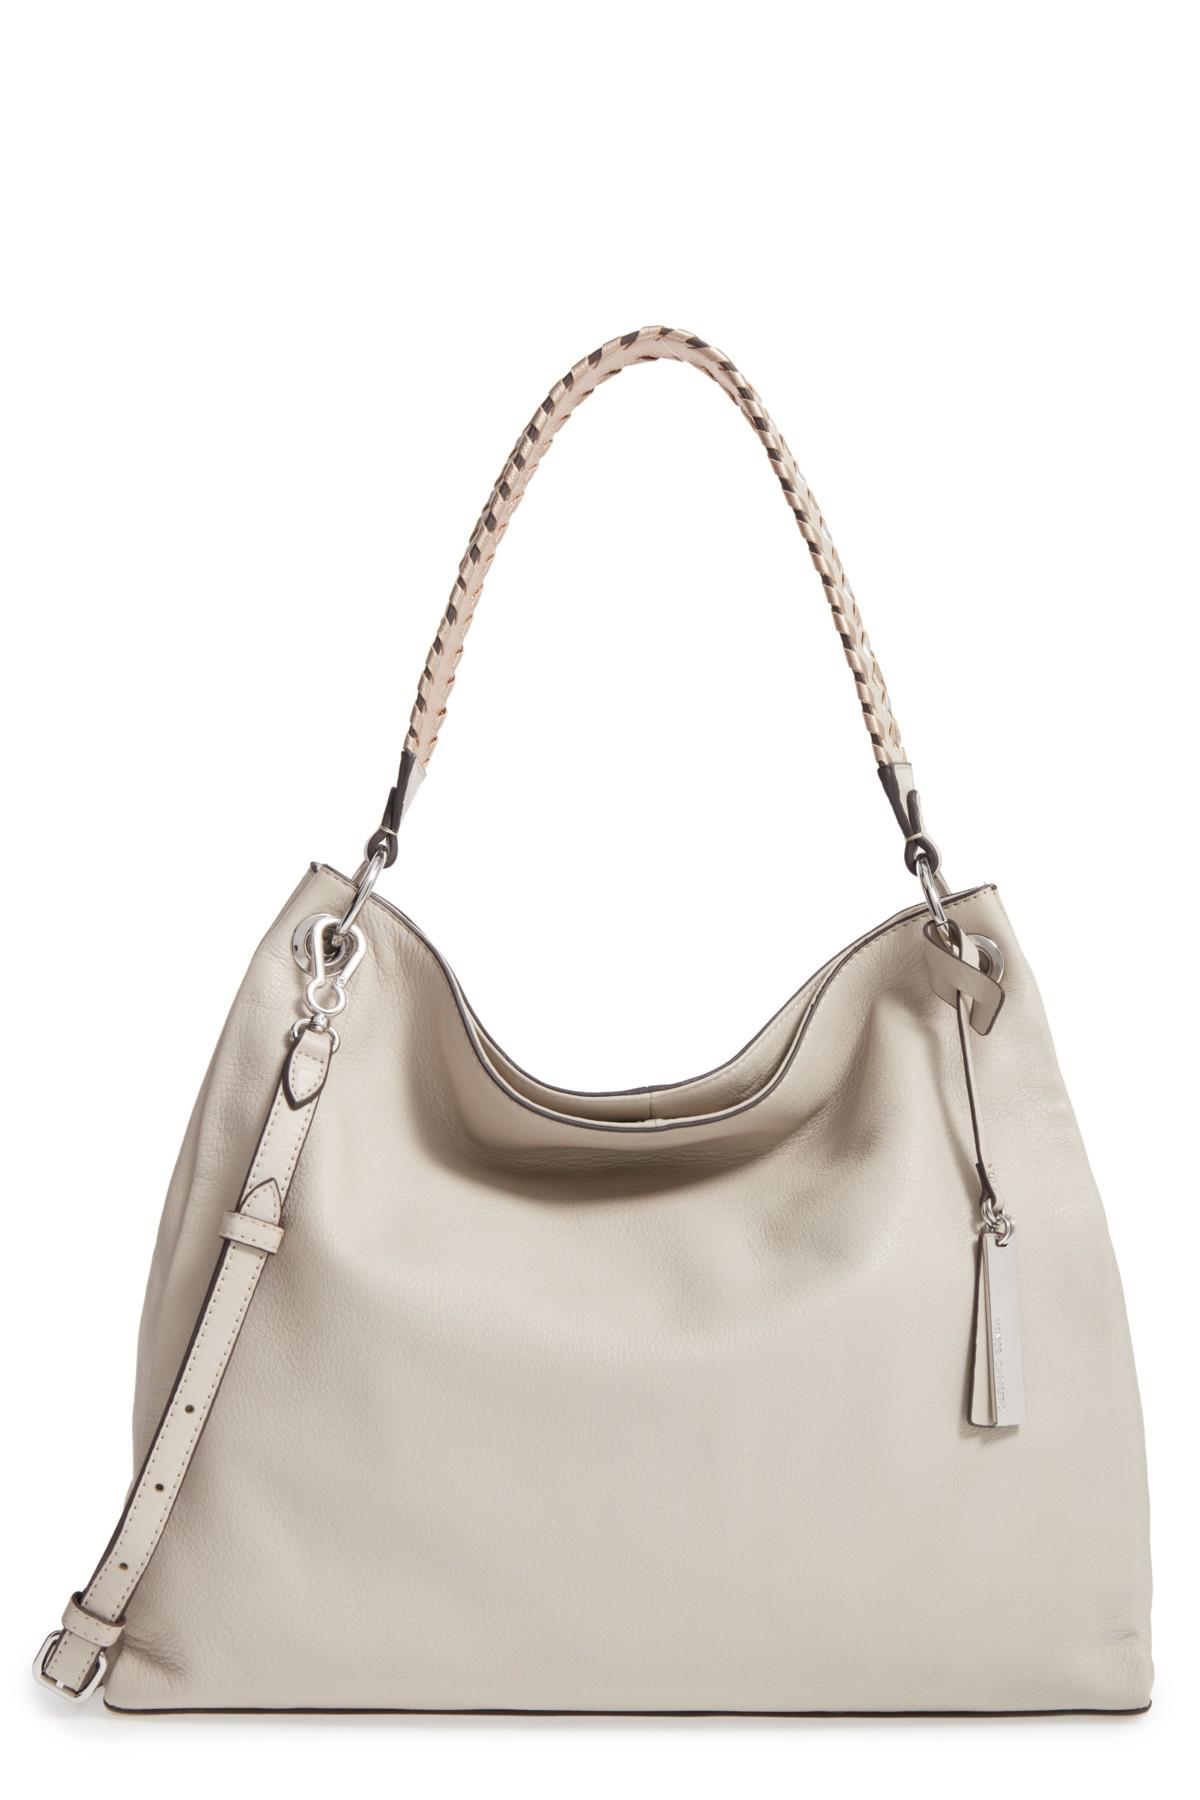 923104ffe Vince Camuto Nadja Leather Hobo in Gray - Lyst